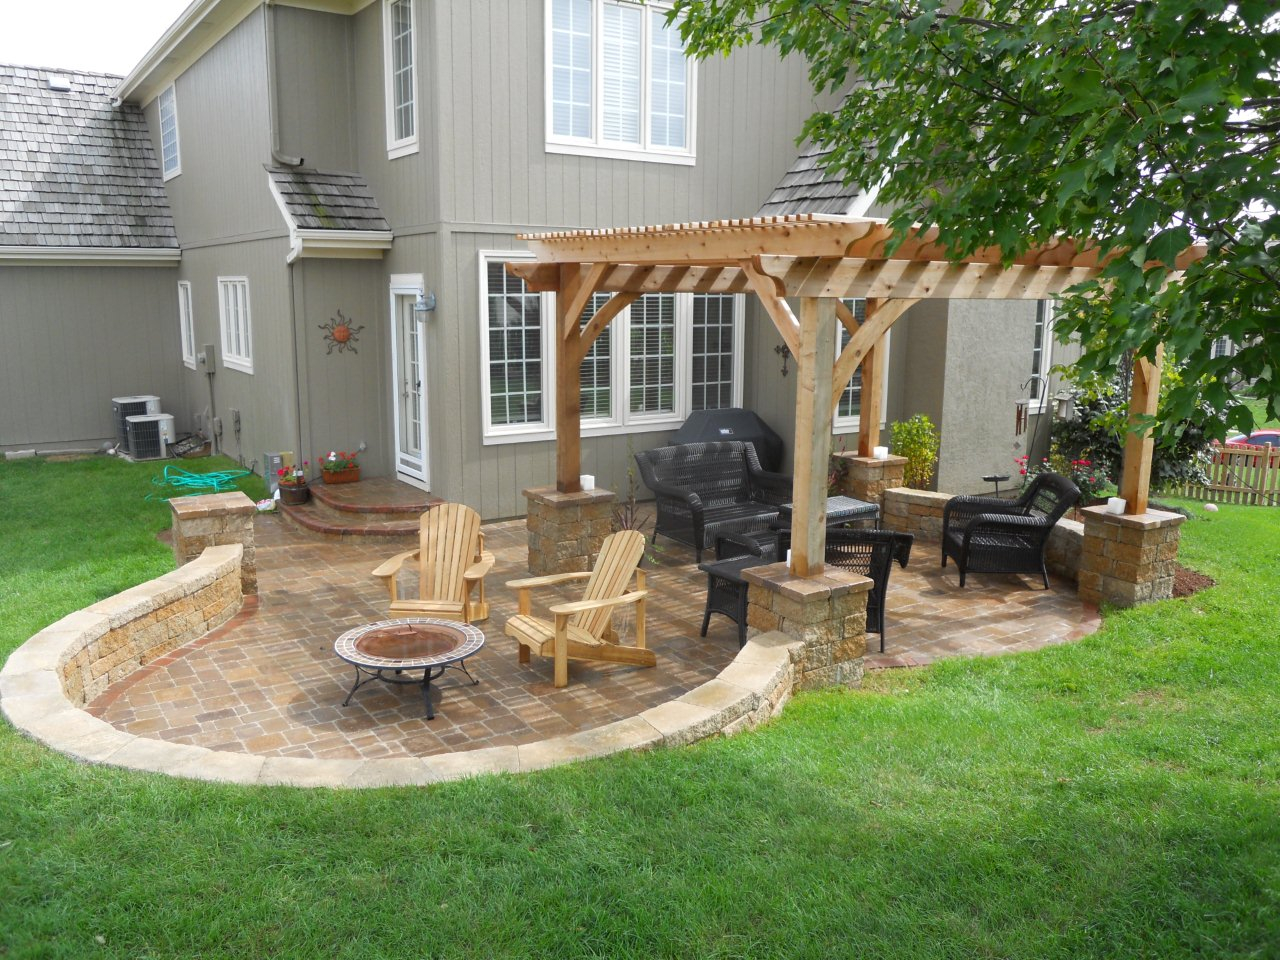 Backyard Landscaping Ideas With Pavers Mystical Designs And Tags throughout 12 Some of the Coolest Ways How to Craft Backyard Landscaping Ideas With Pavers